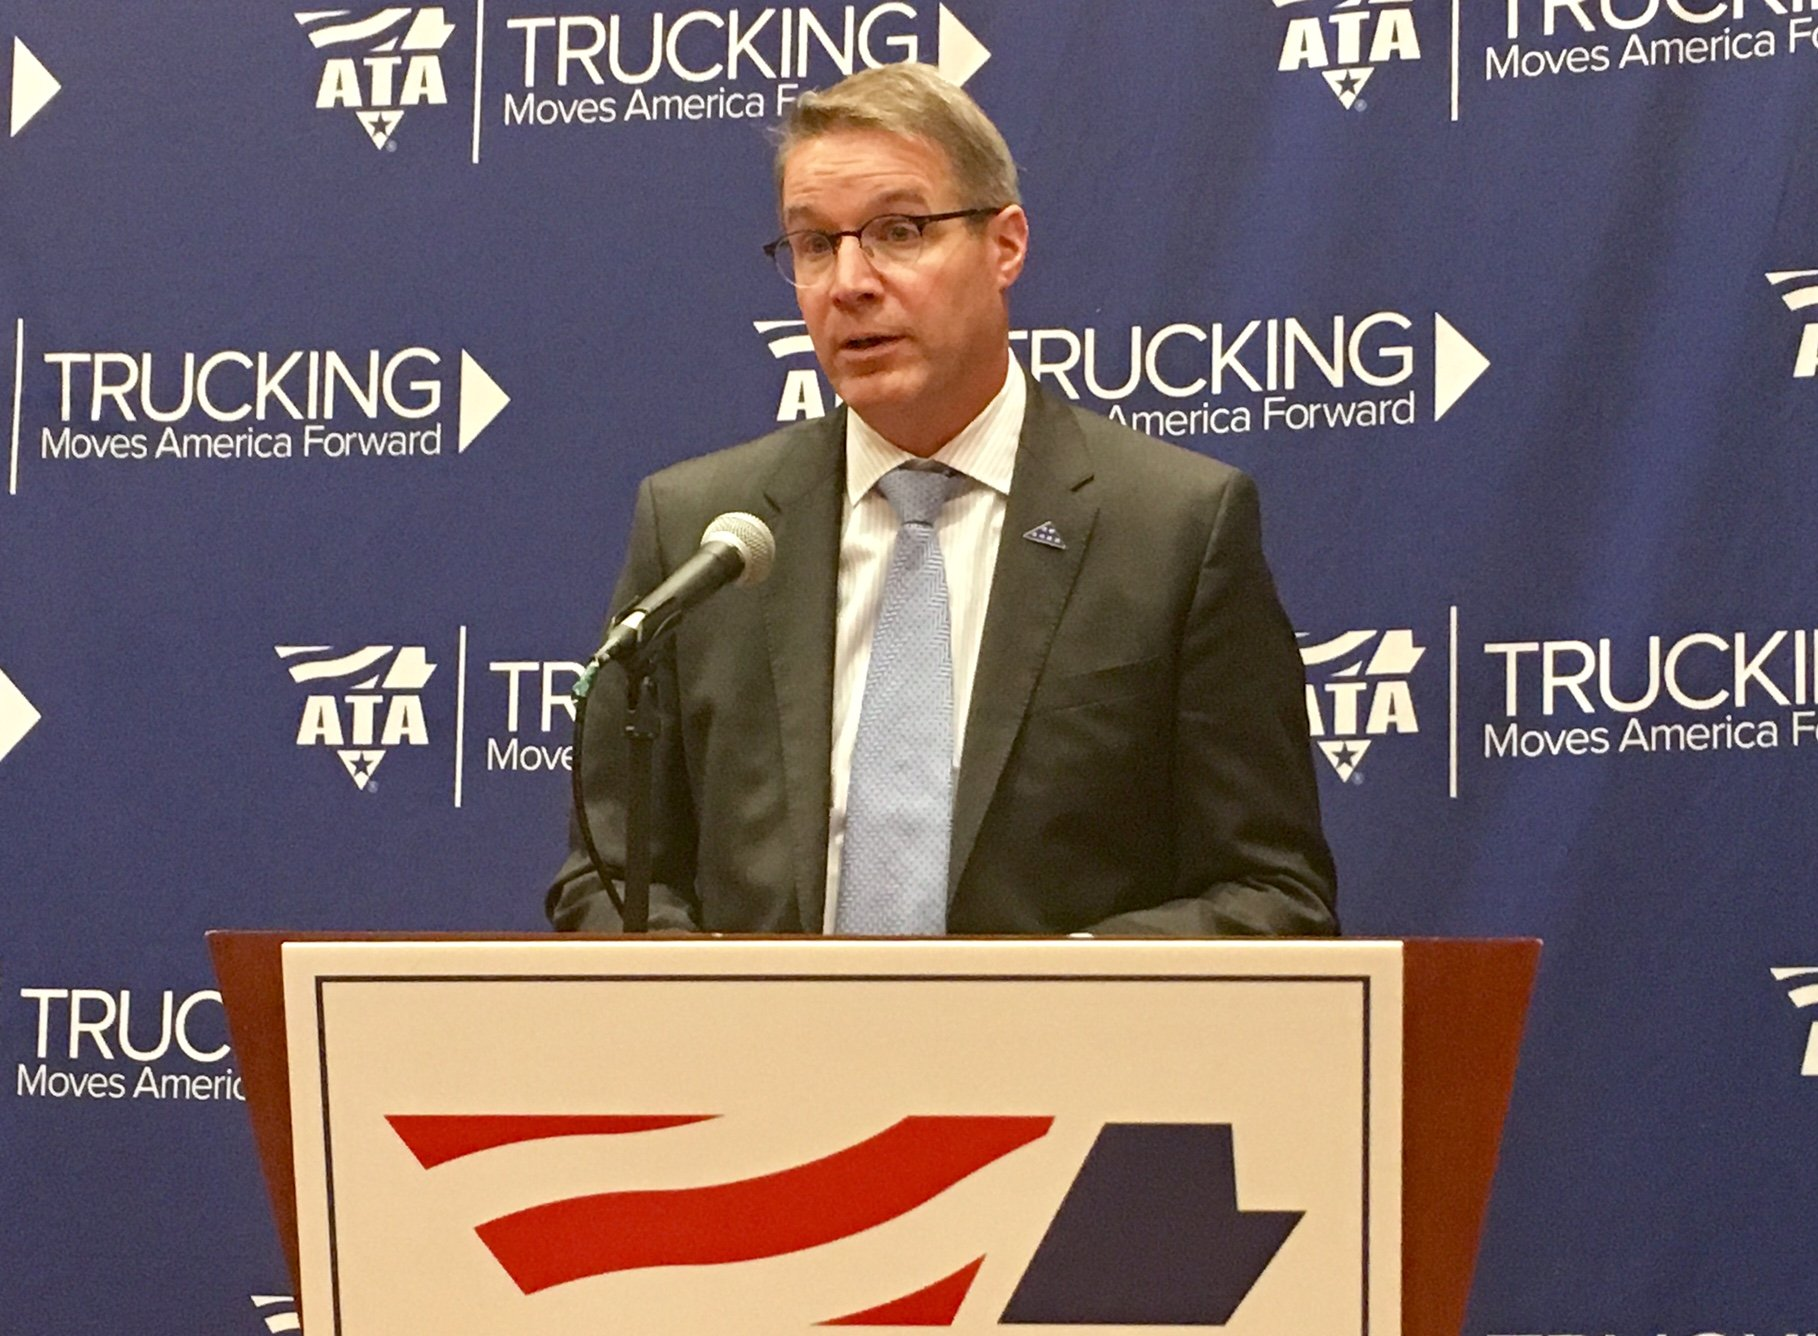 ATA's Spear Slams Proposed Speed-Limiter Rule